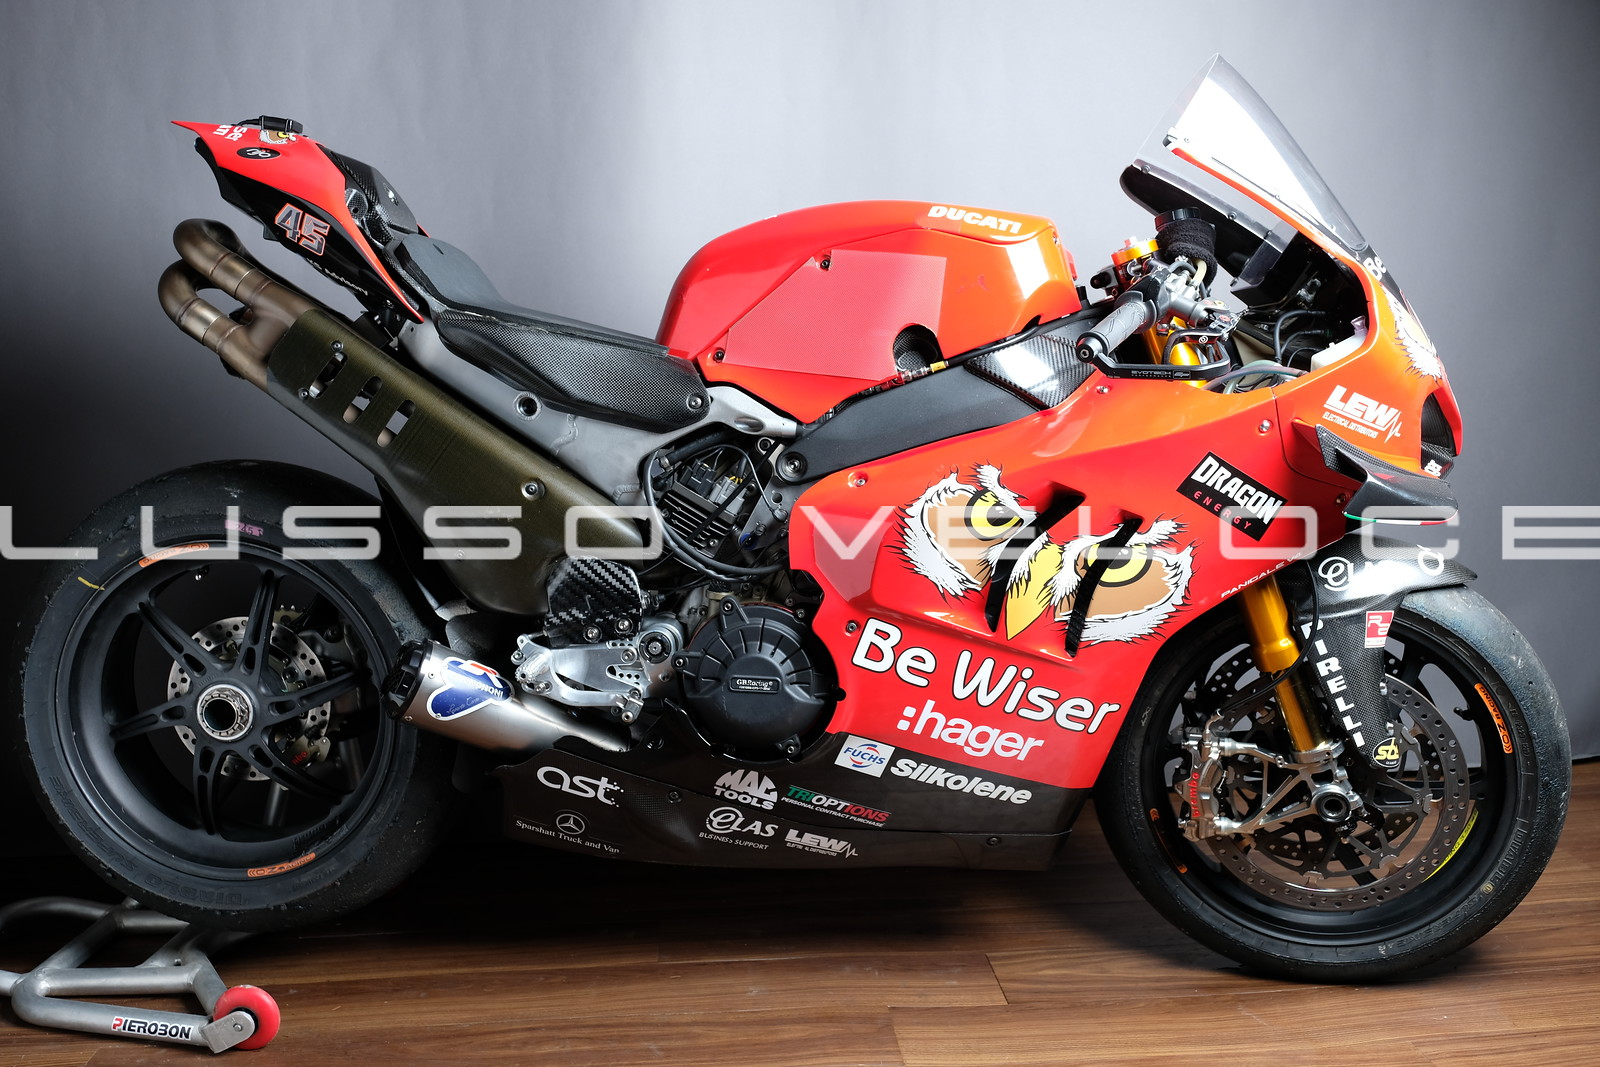 Ducati V4 RS Reddings championship BSB winning bike